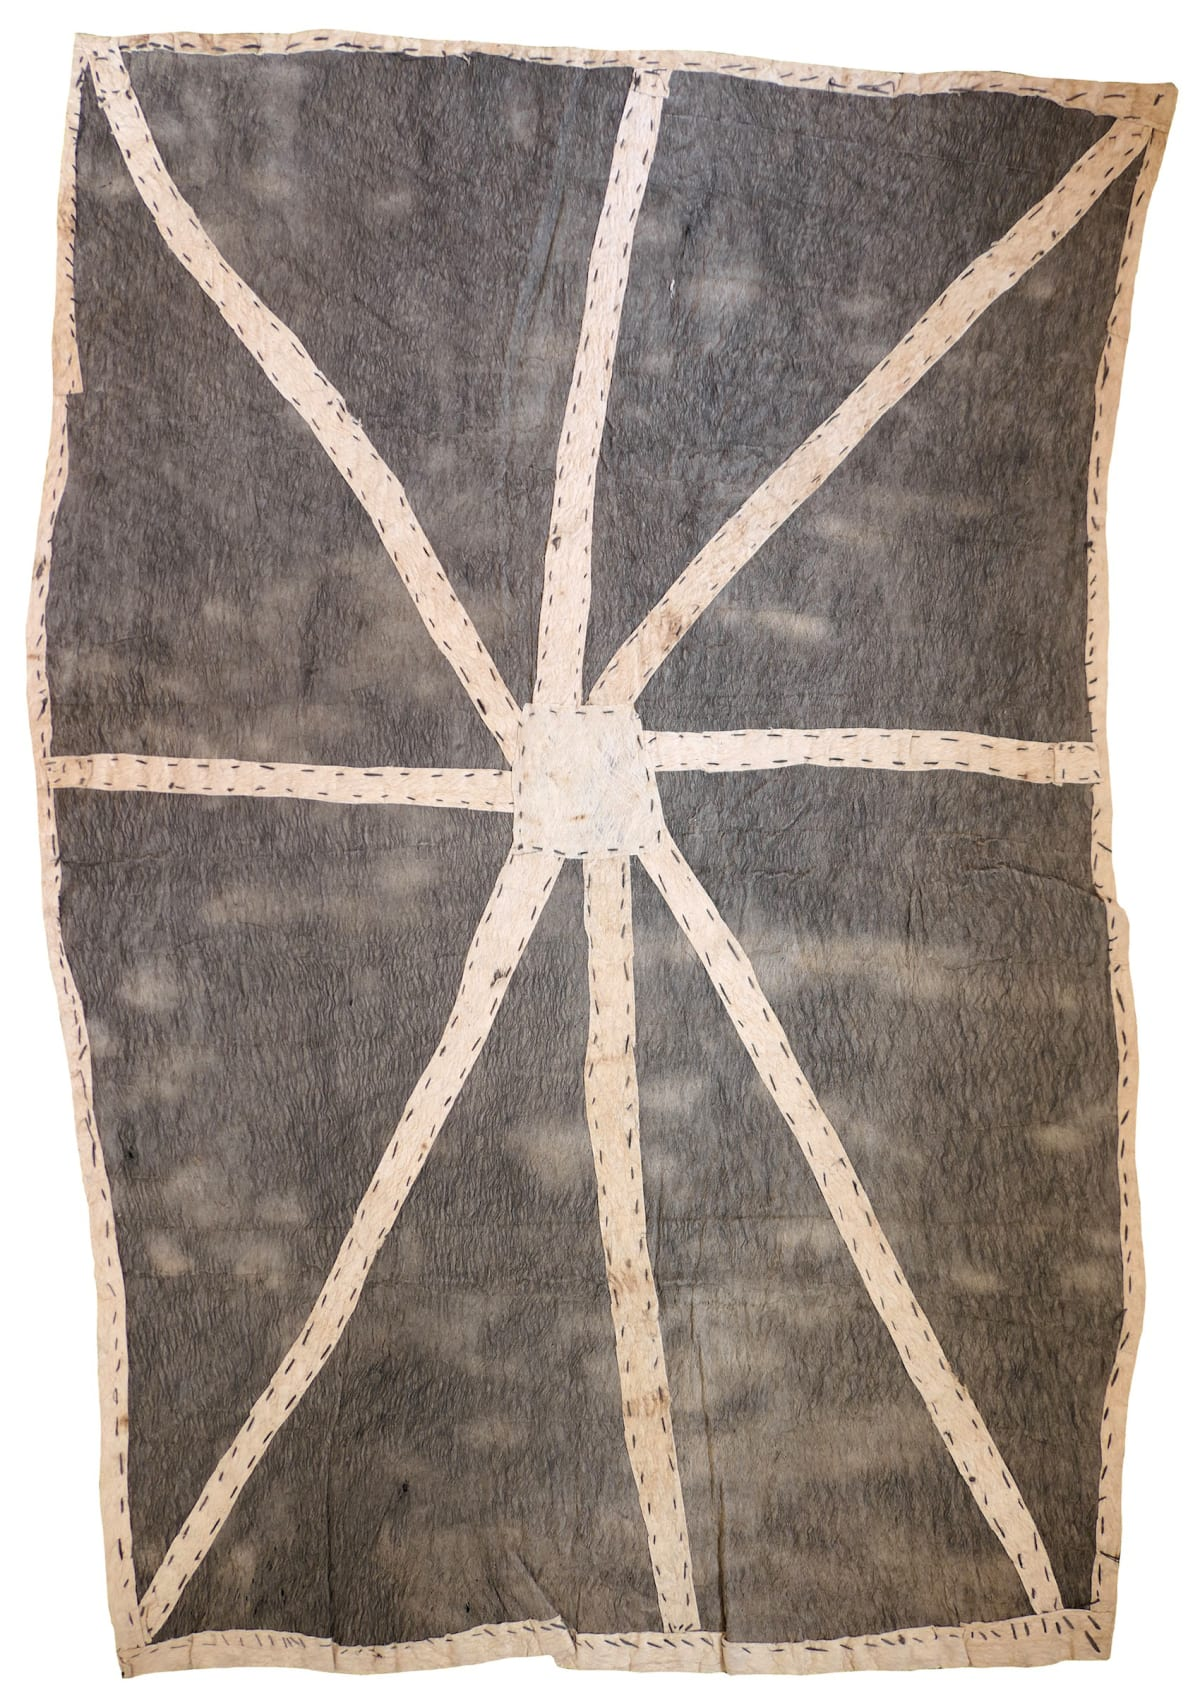 Brenda Kesi (Arire) Wo'ohohe (Ground-burrowing spider) natural pigments on nioge (barkcloth) 104 x 70 cm